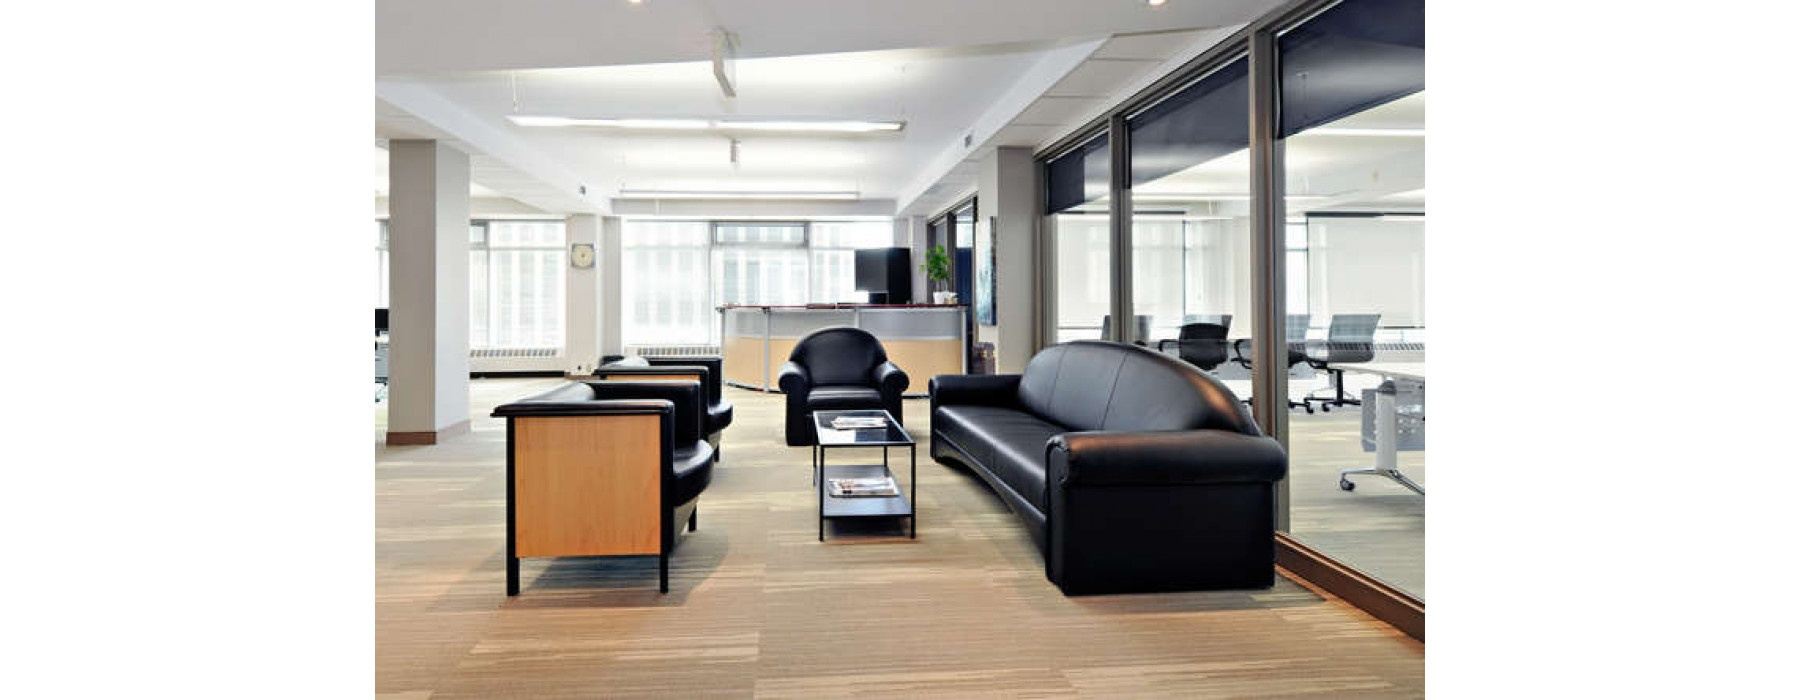 Ottawa - Laurier Ave West - Virtual office